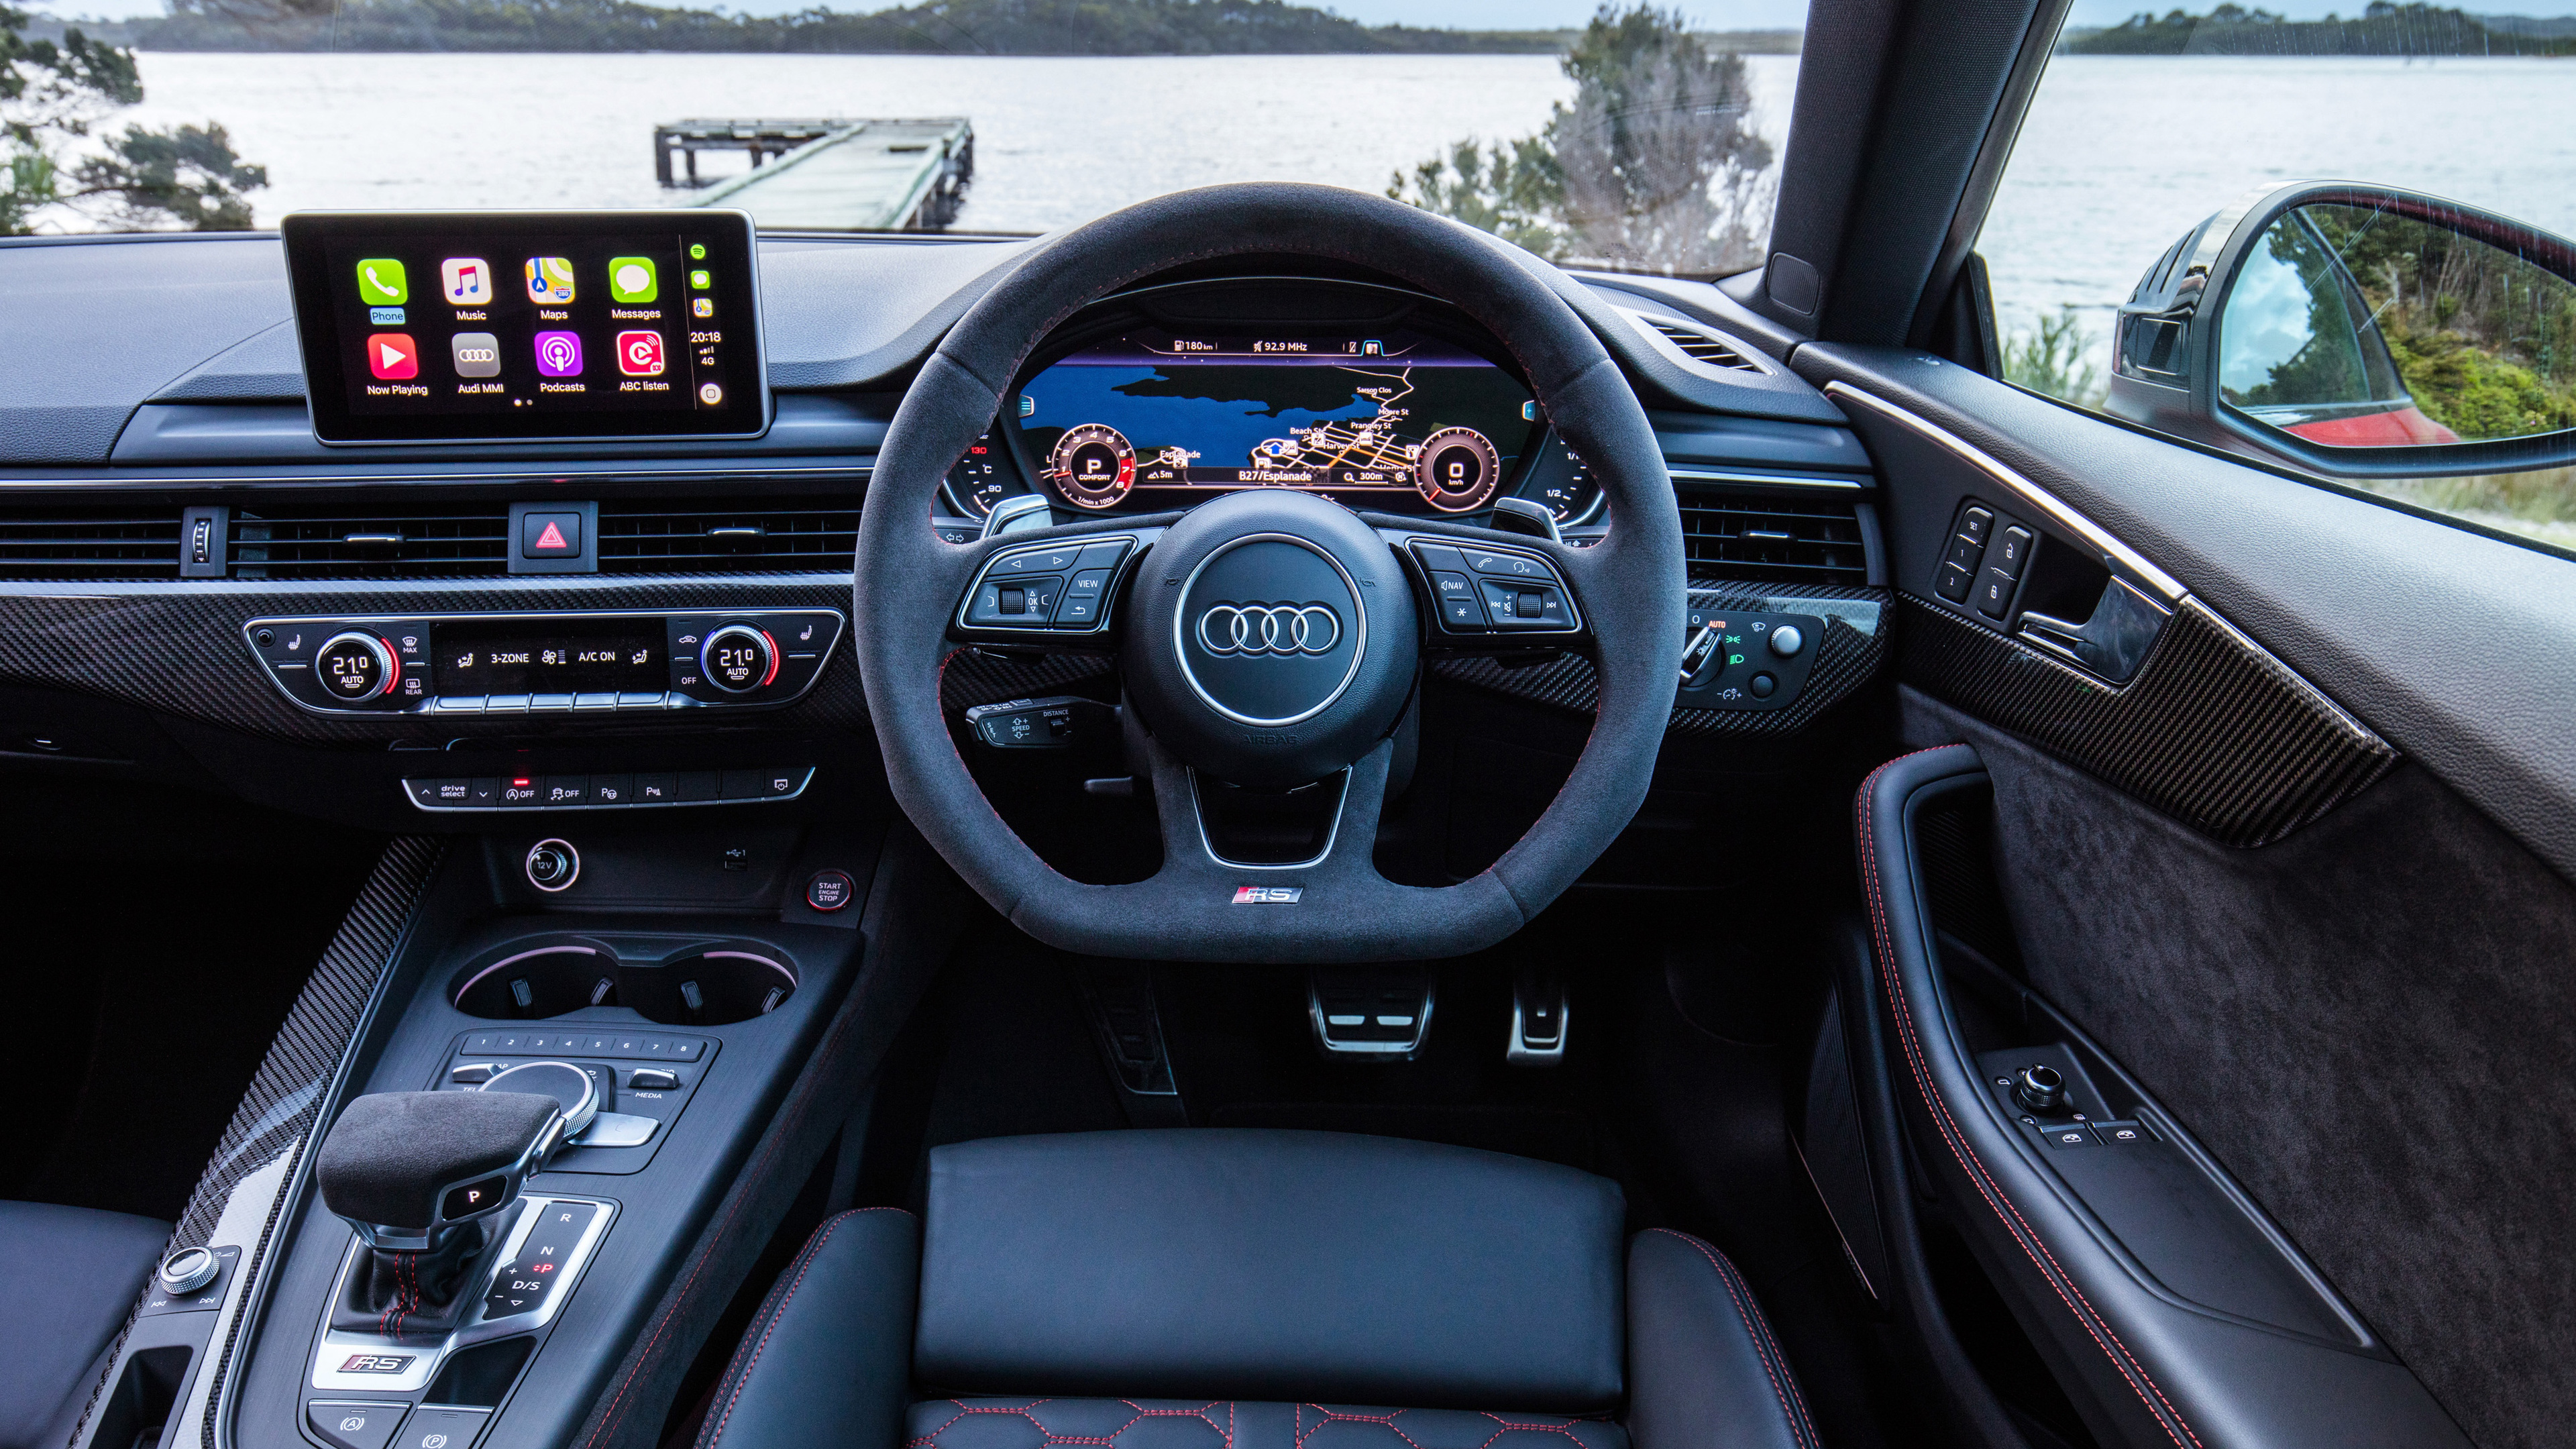 audi rs5 coupe interior 4k 1539108747 - Audi Rs5 Coupe Interior 4k - interior wallpapers, hd-wallpapers, cars wallpapers, audi wallpapers, audi rs5 wallpapers, 4k-wallpapers